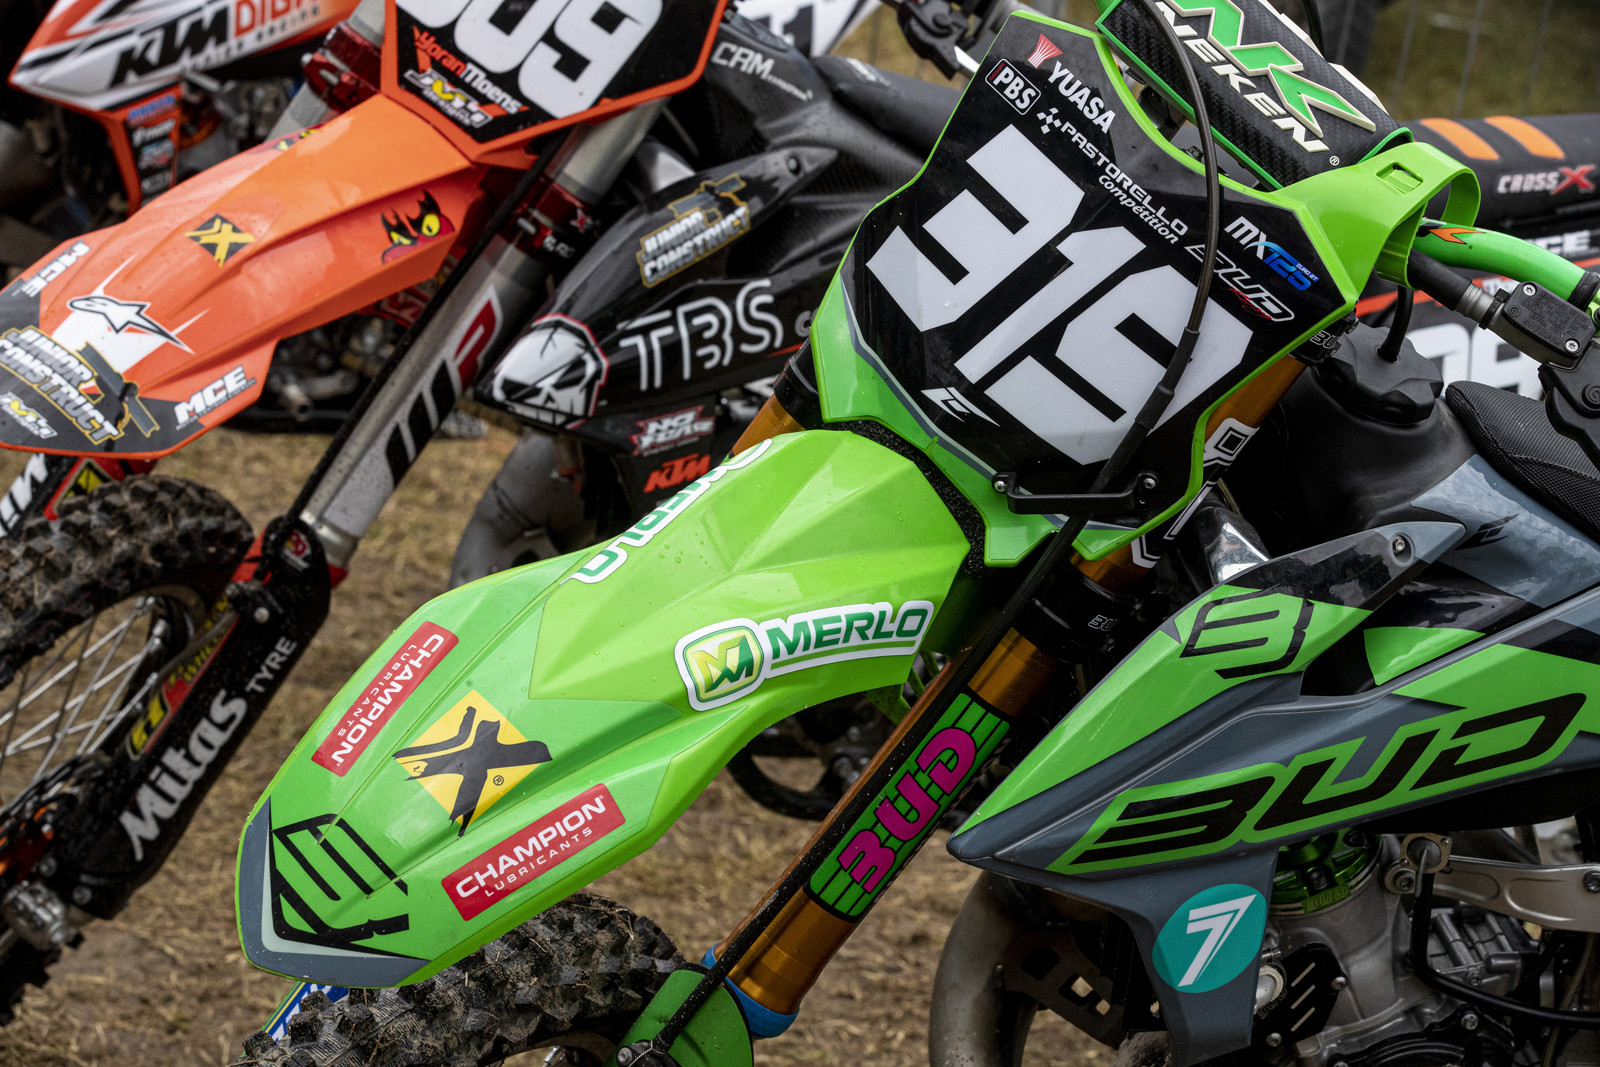 We are going to start right in with some sweet bikes! At first glance, this bike is clearly a Kawasaki. That is definitely KX front plastics. But what about those shrouds...